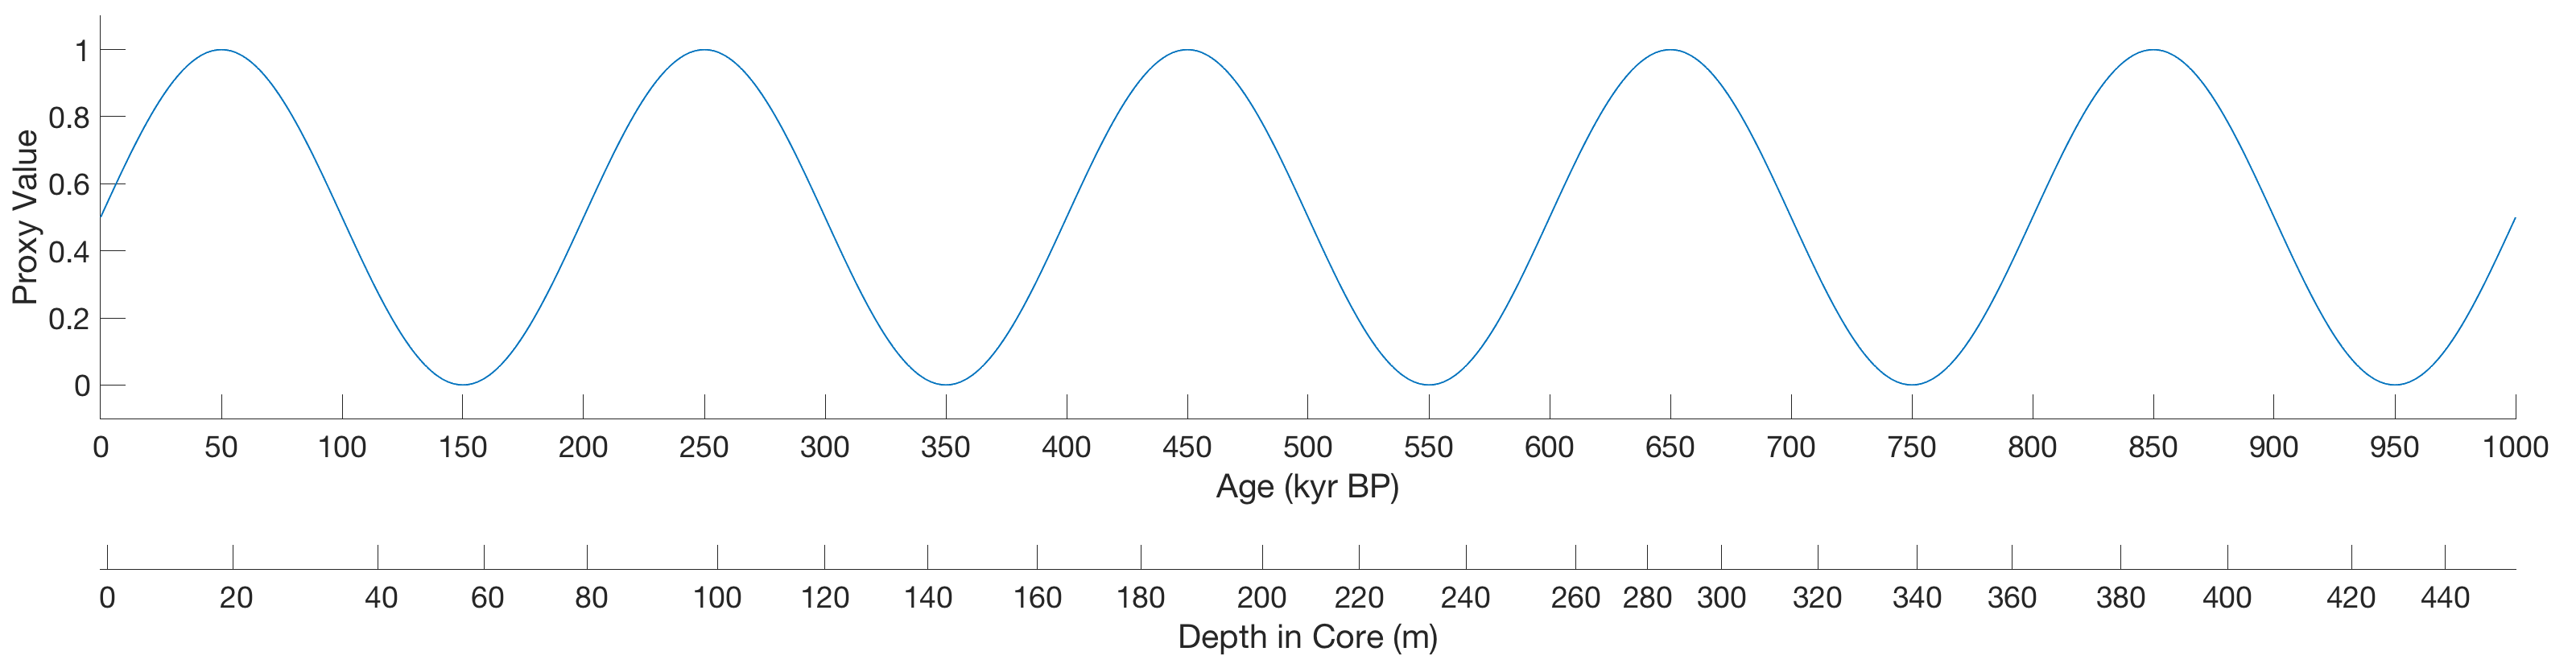 Displaying Sediment Records with both Age and Depth Axis